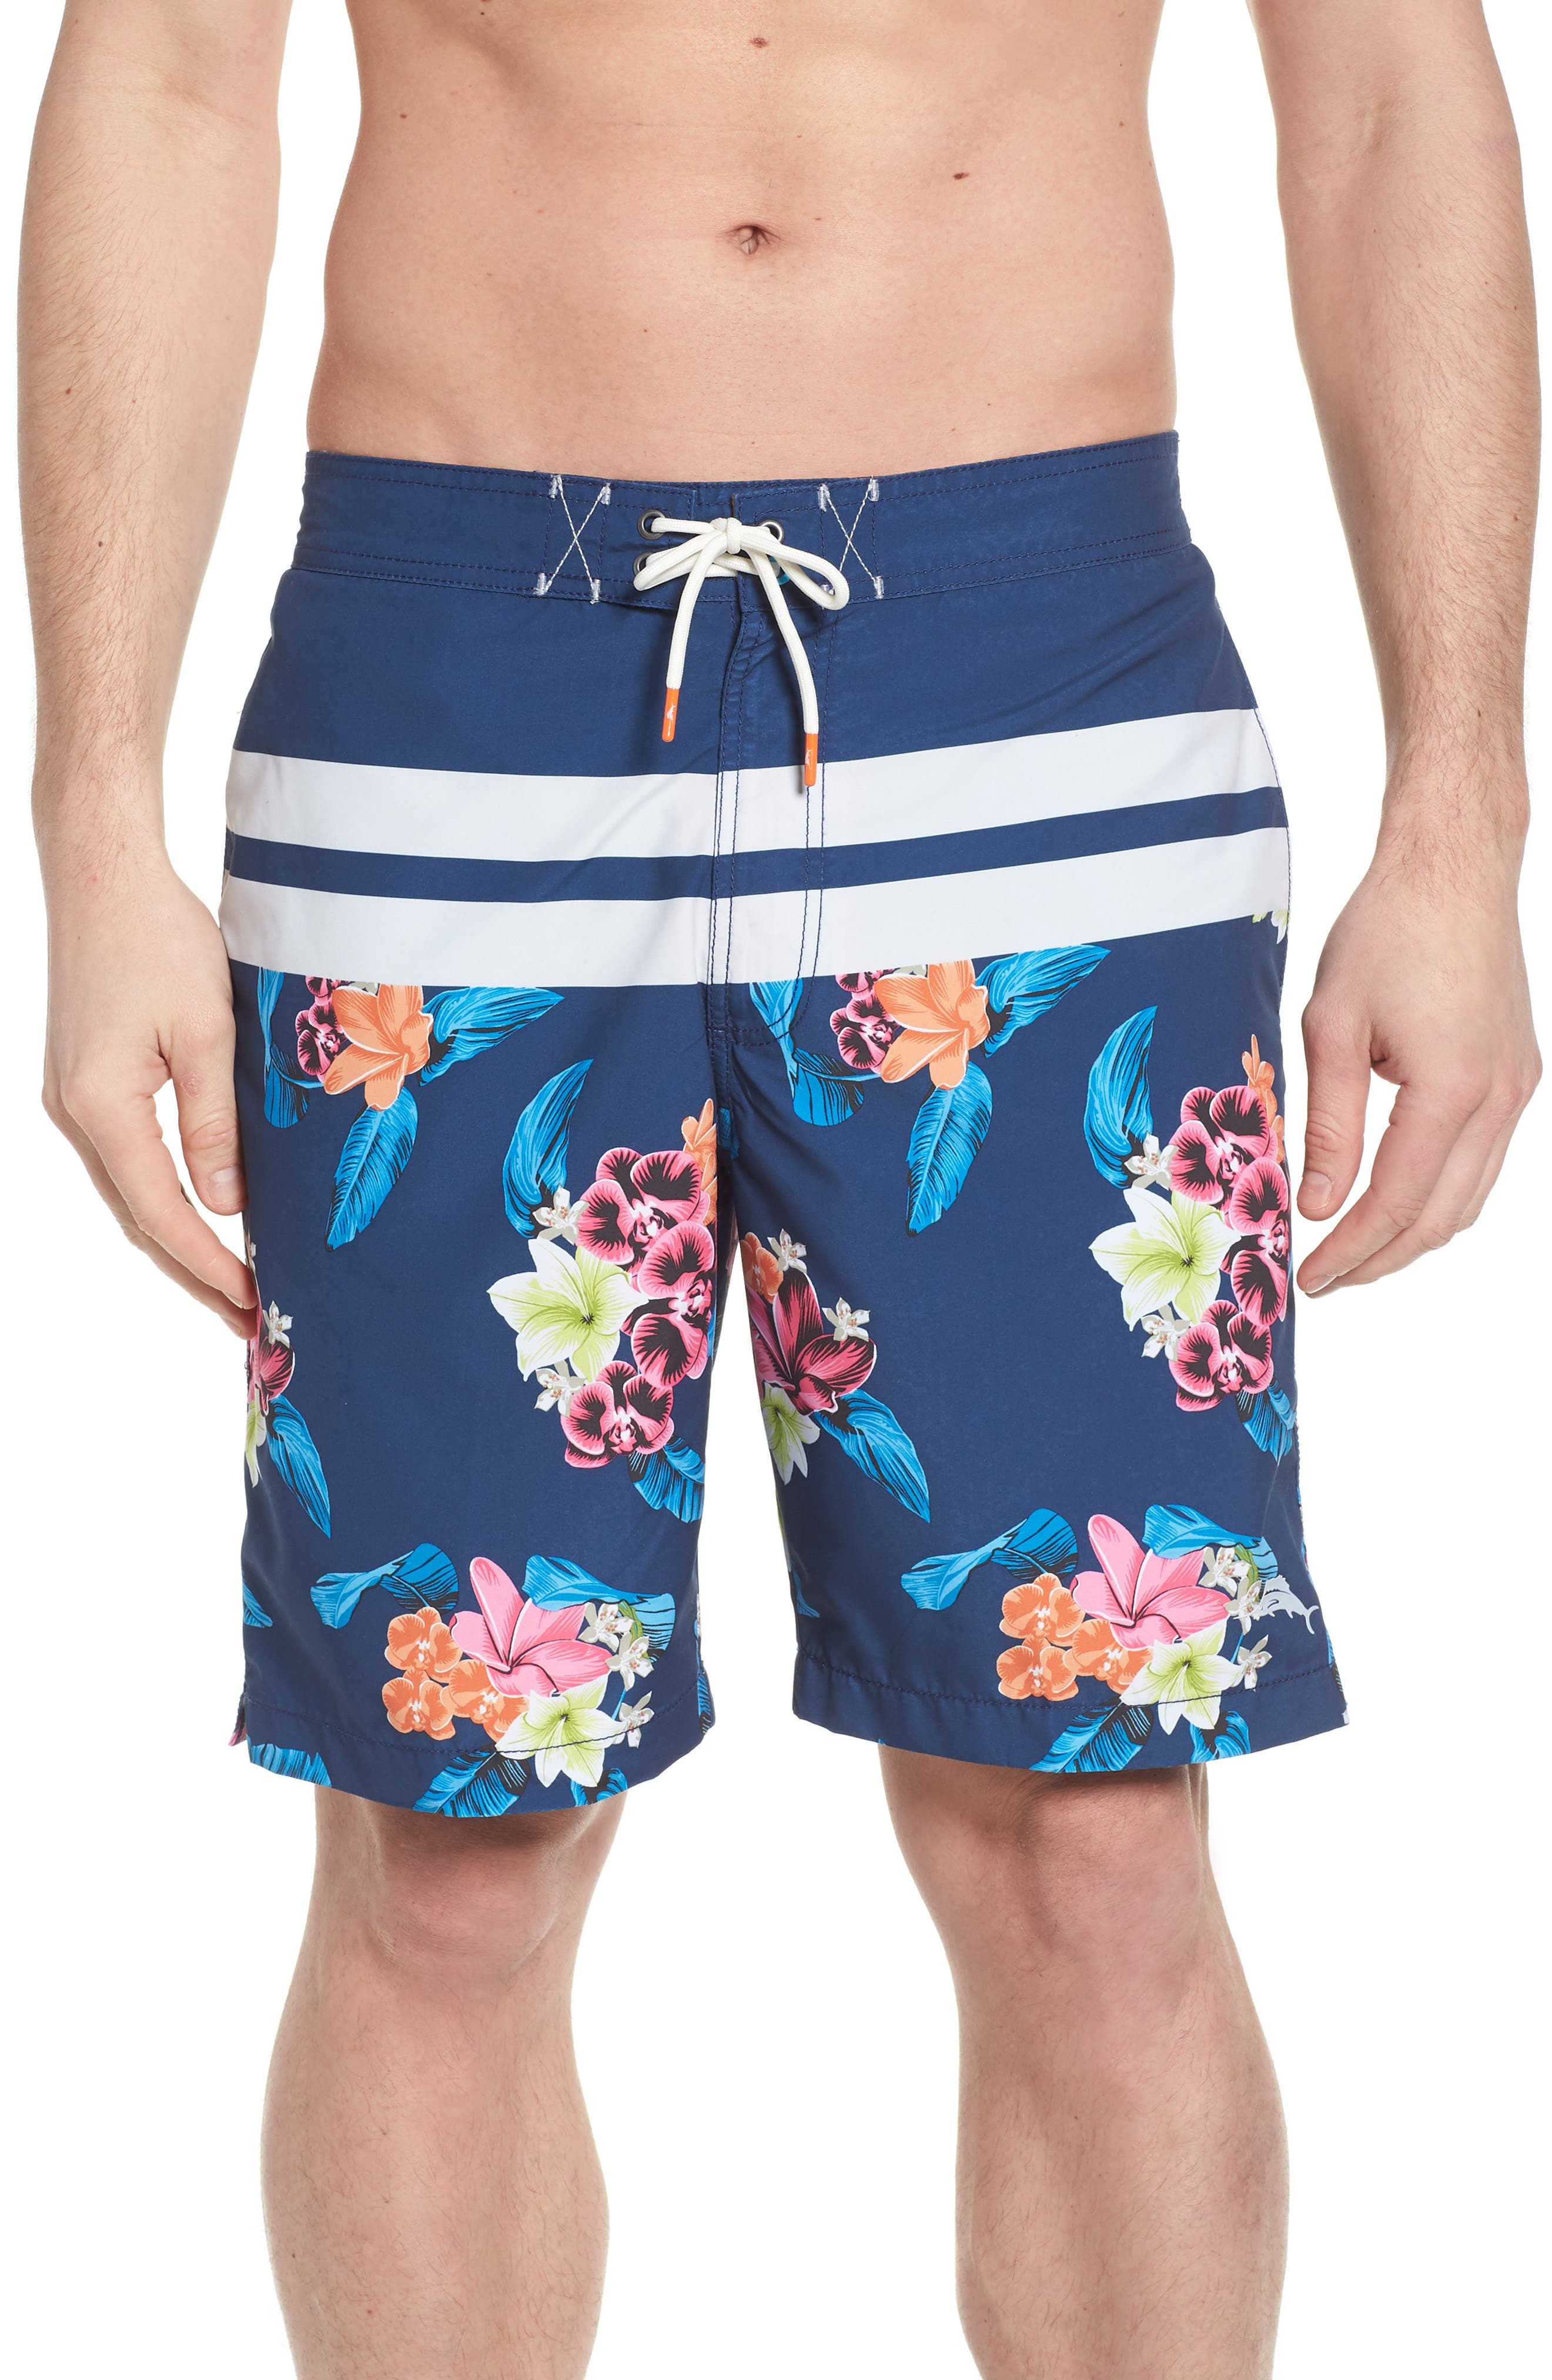 Baja Saltwater Blooms Board Shorts,                         Main,                         color, Throne Blue